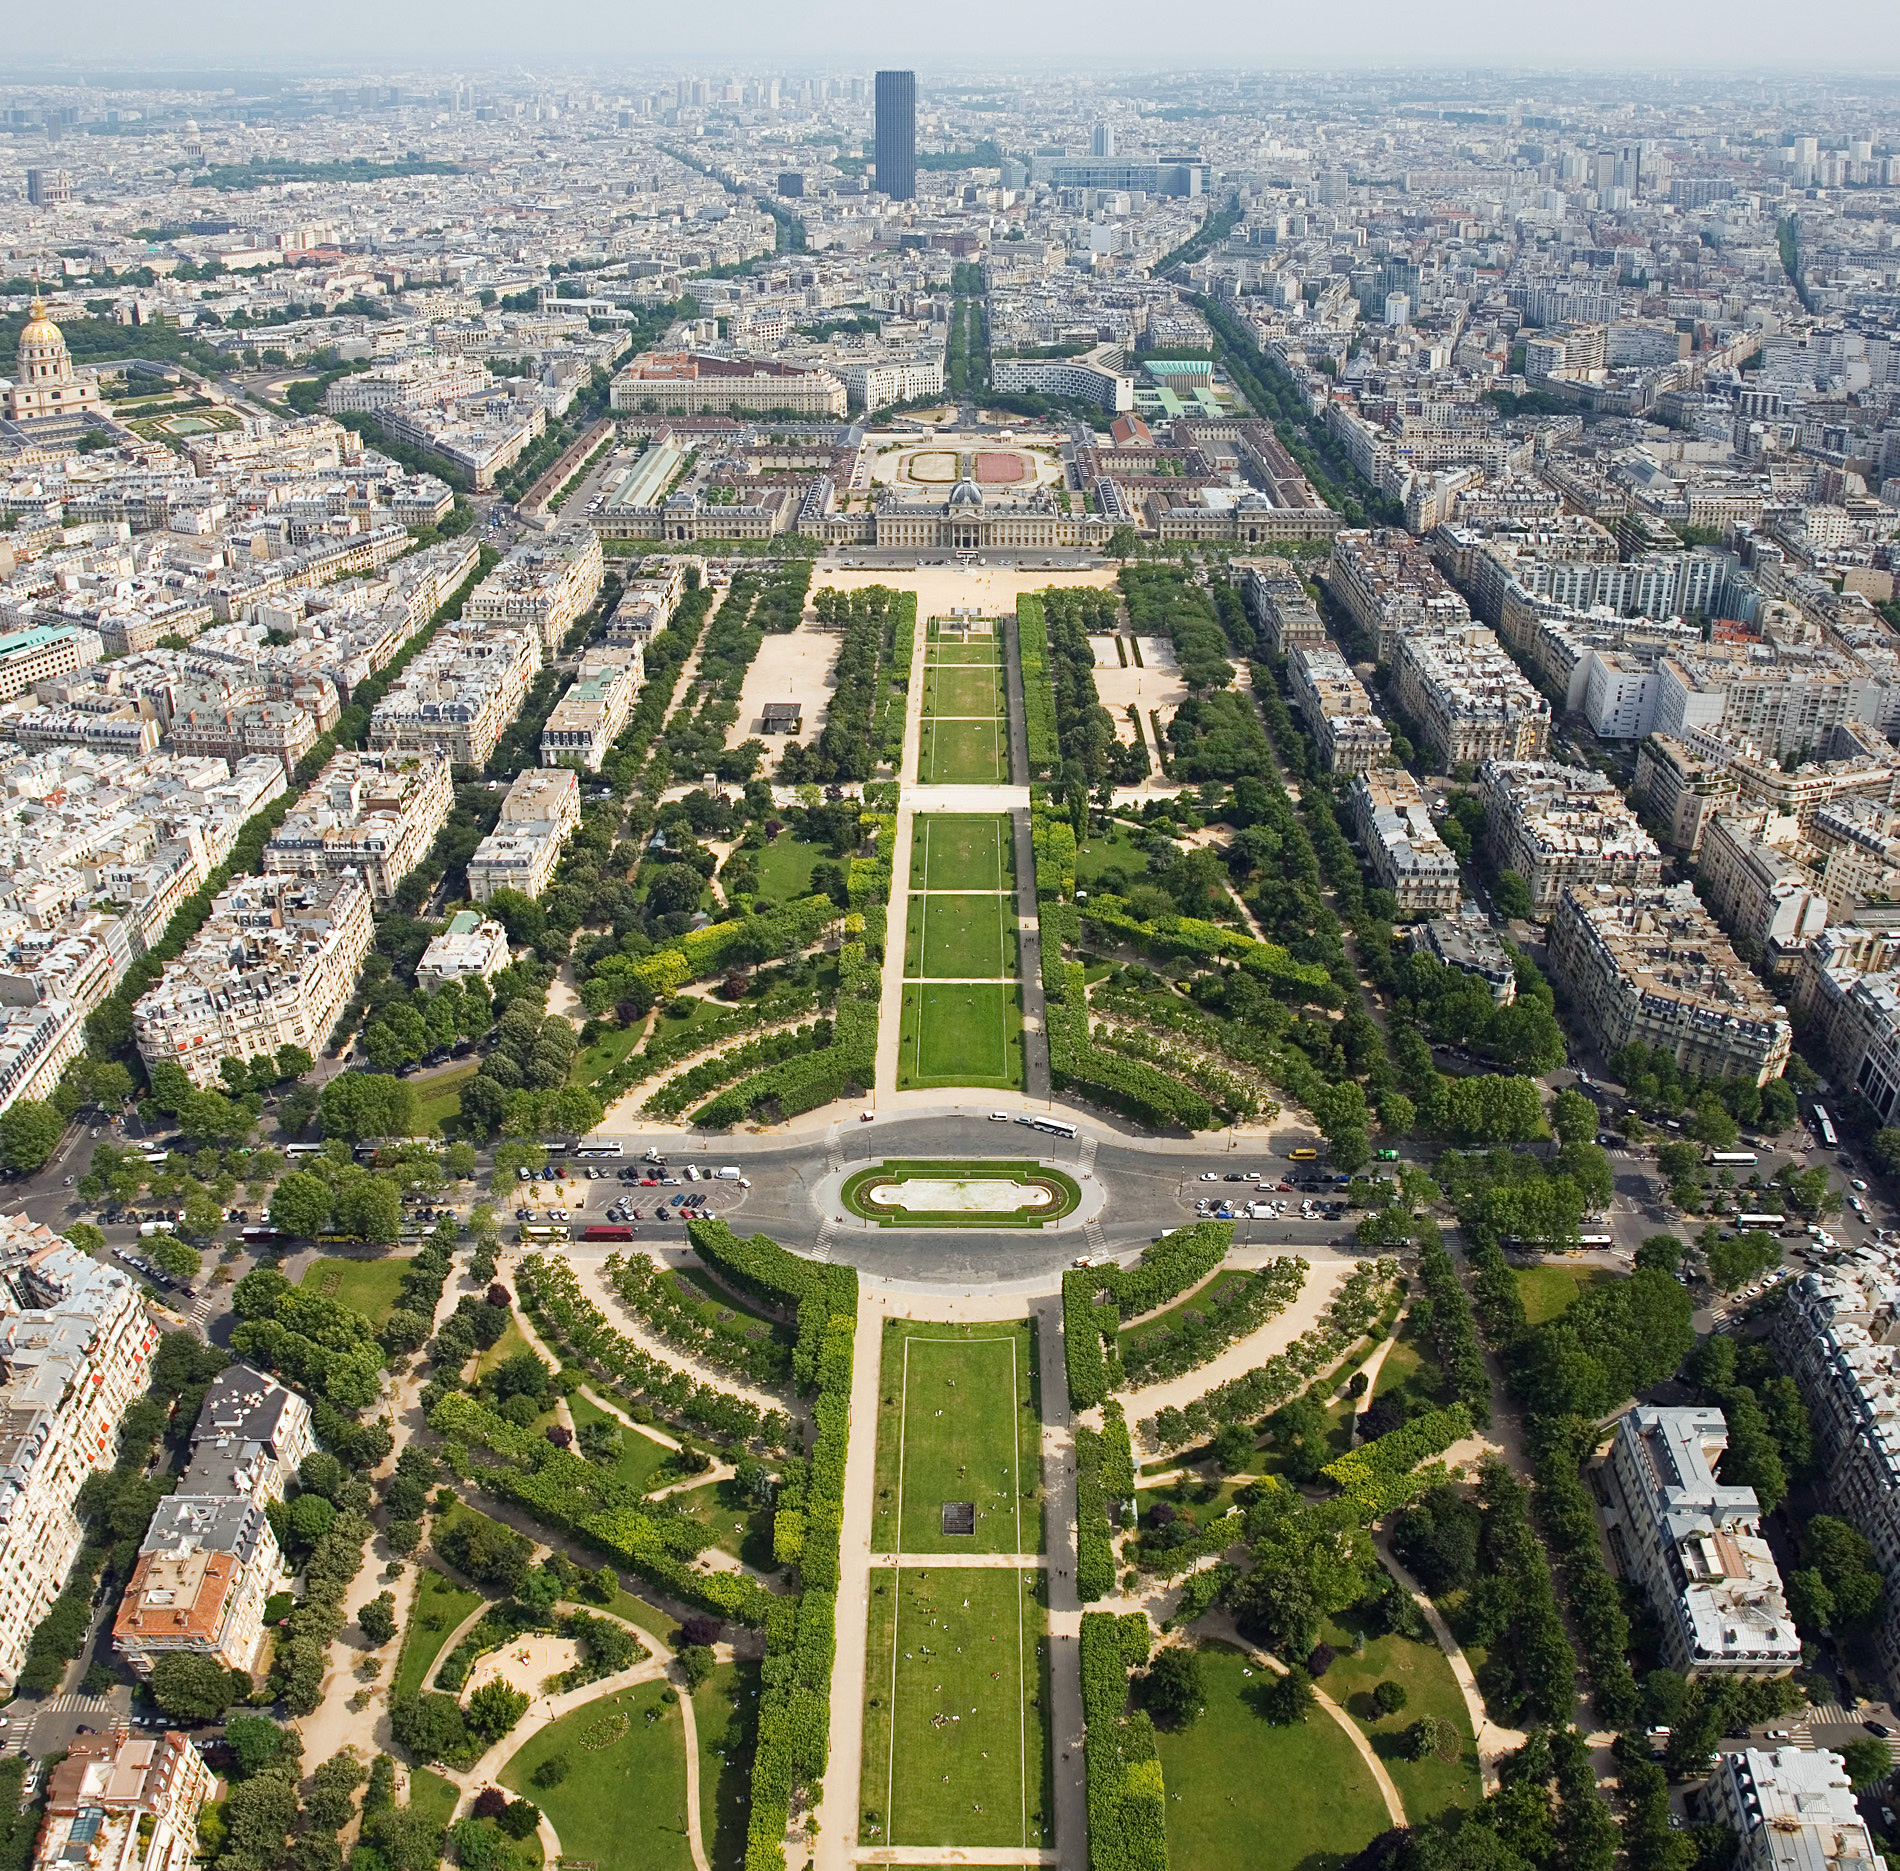 Champ_de_Mars_from_the_Eiffel_Tower_-_July_2006_edit.jpg